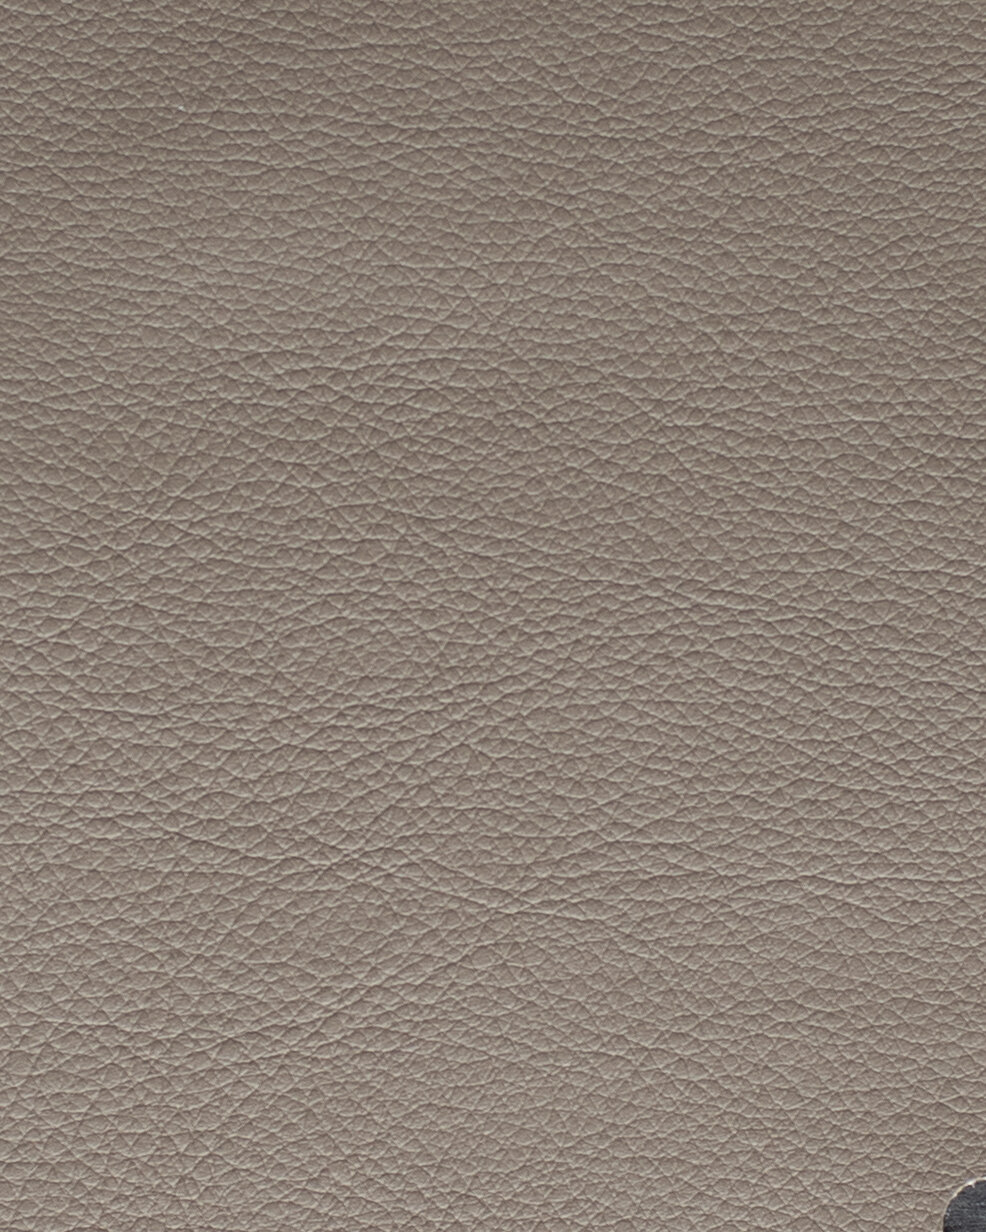 Faux Leather: Taupe